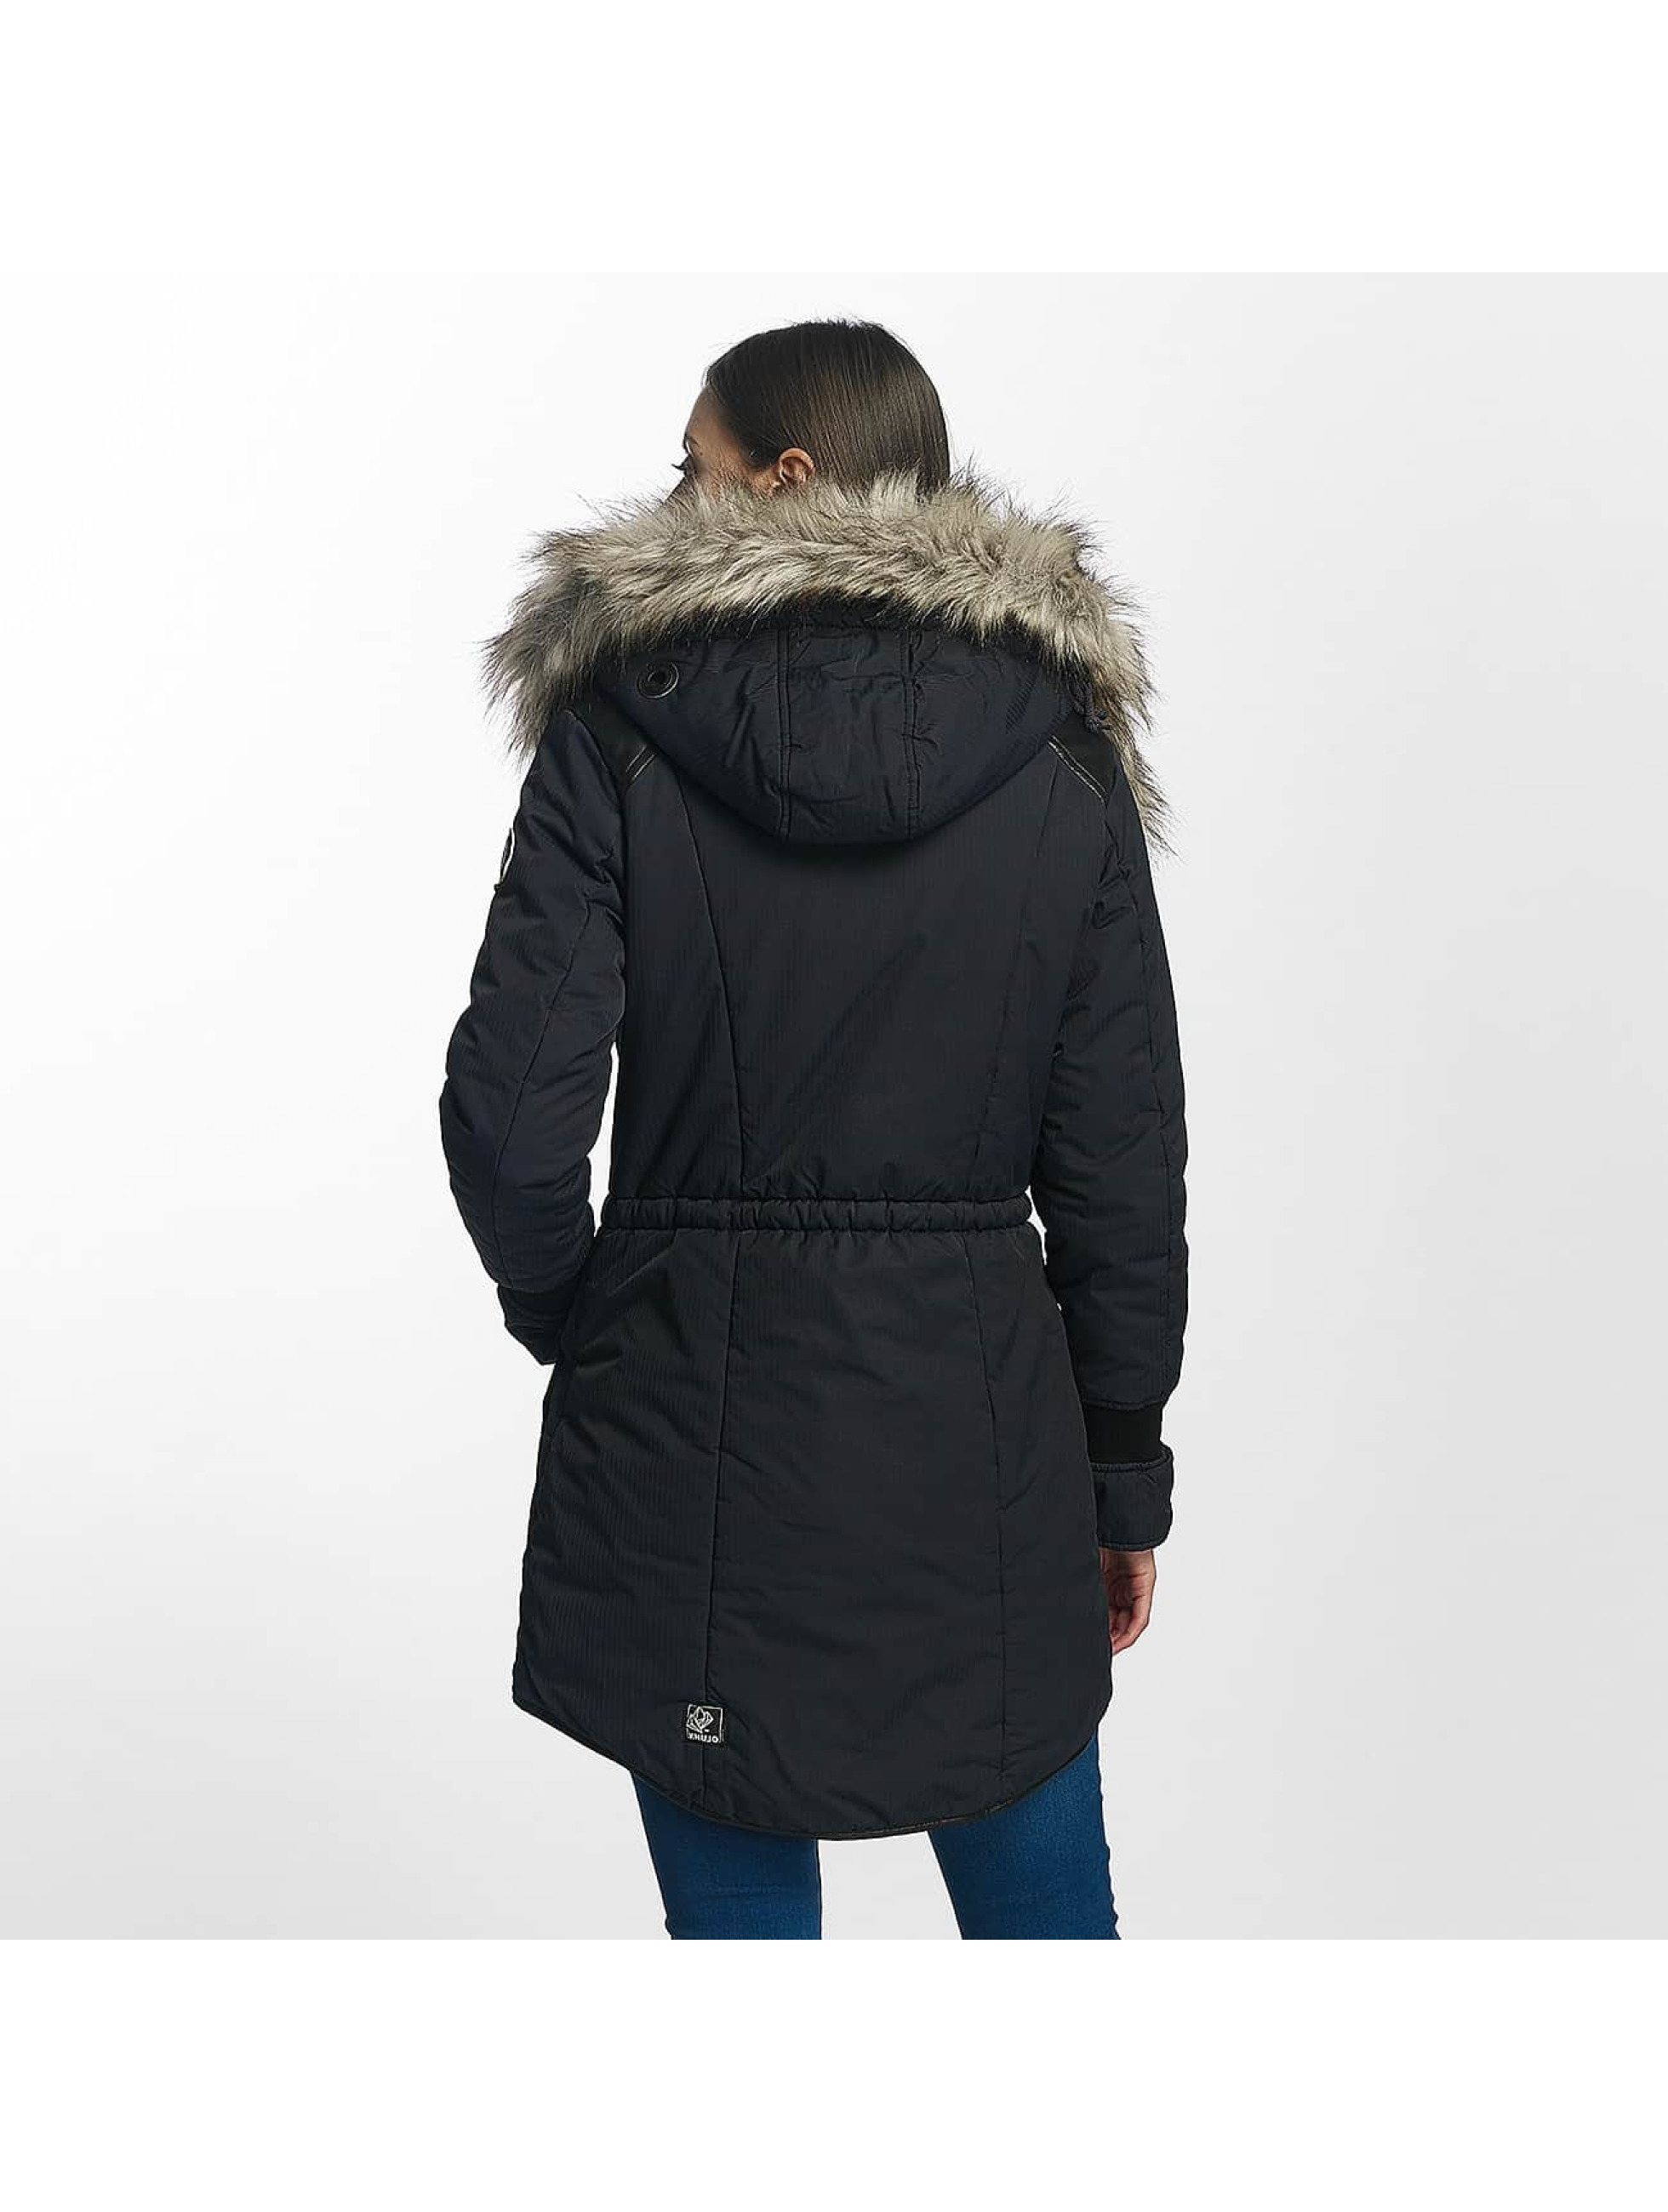 Khujo Winter Jacket Retro Bugs blue